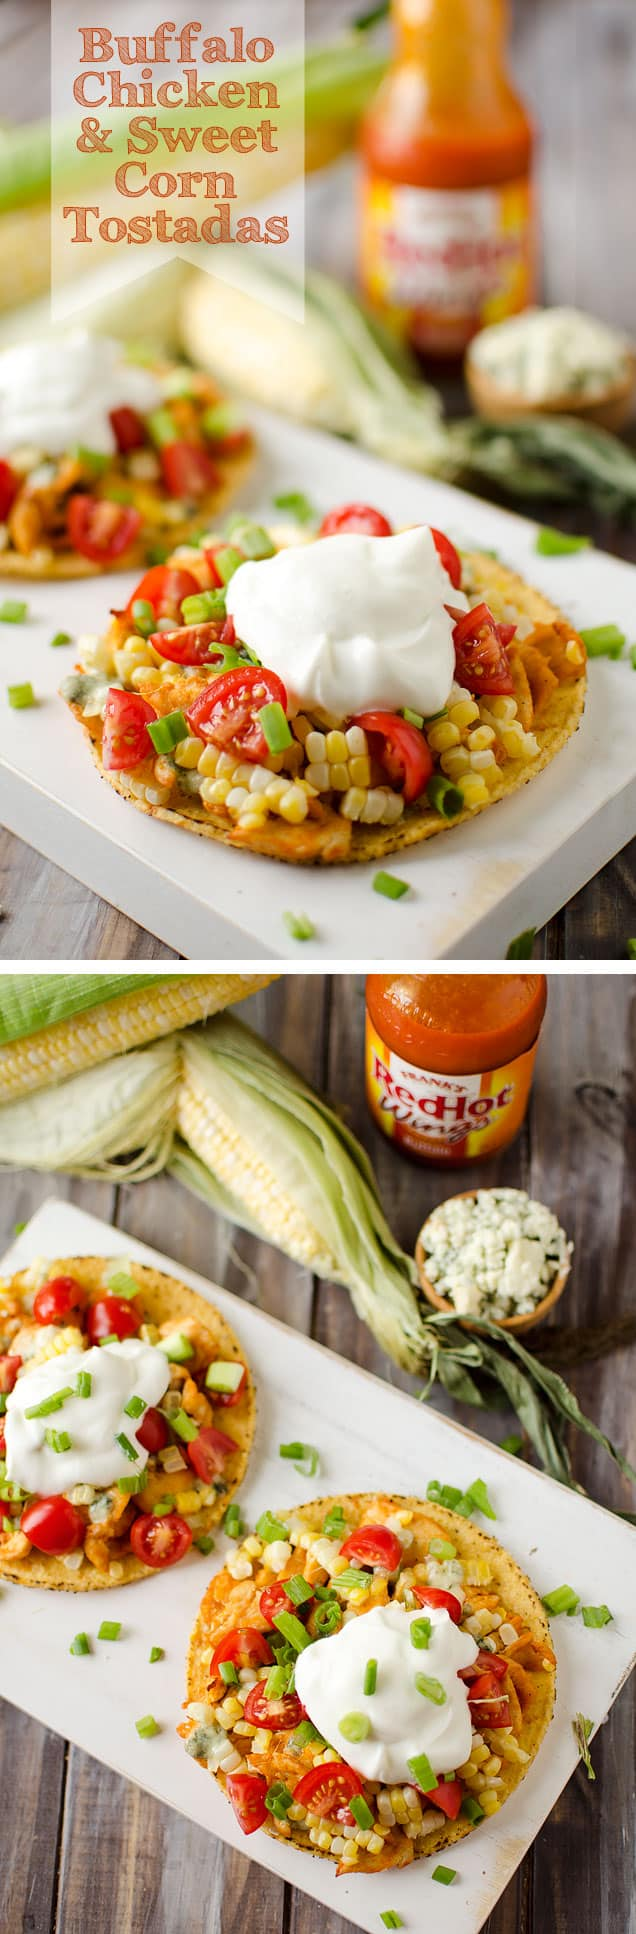 Buffalo Chicken and Sweet Corn Tostada - Krafted Koch